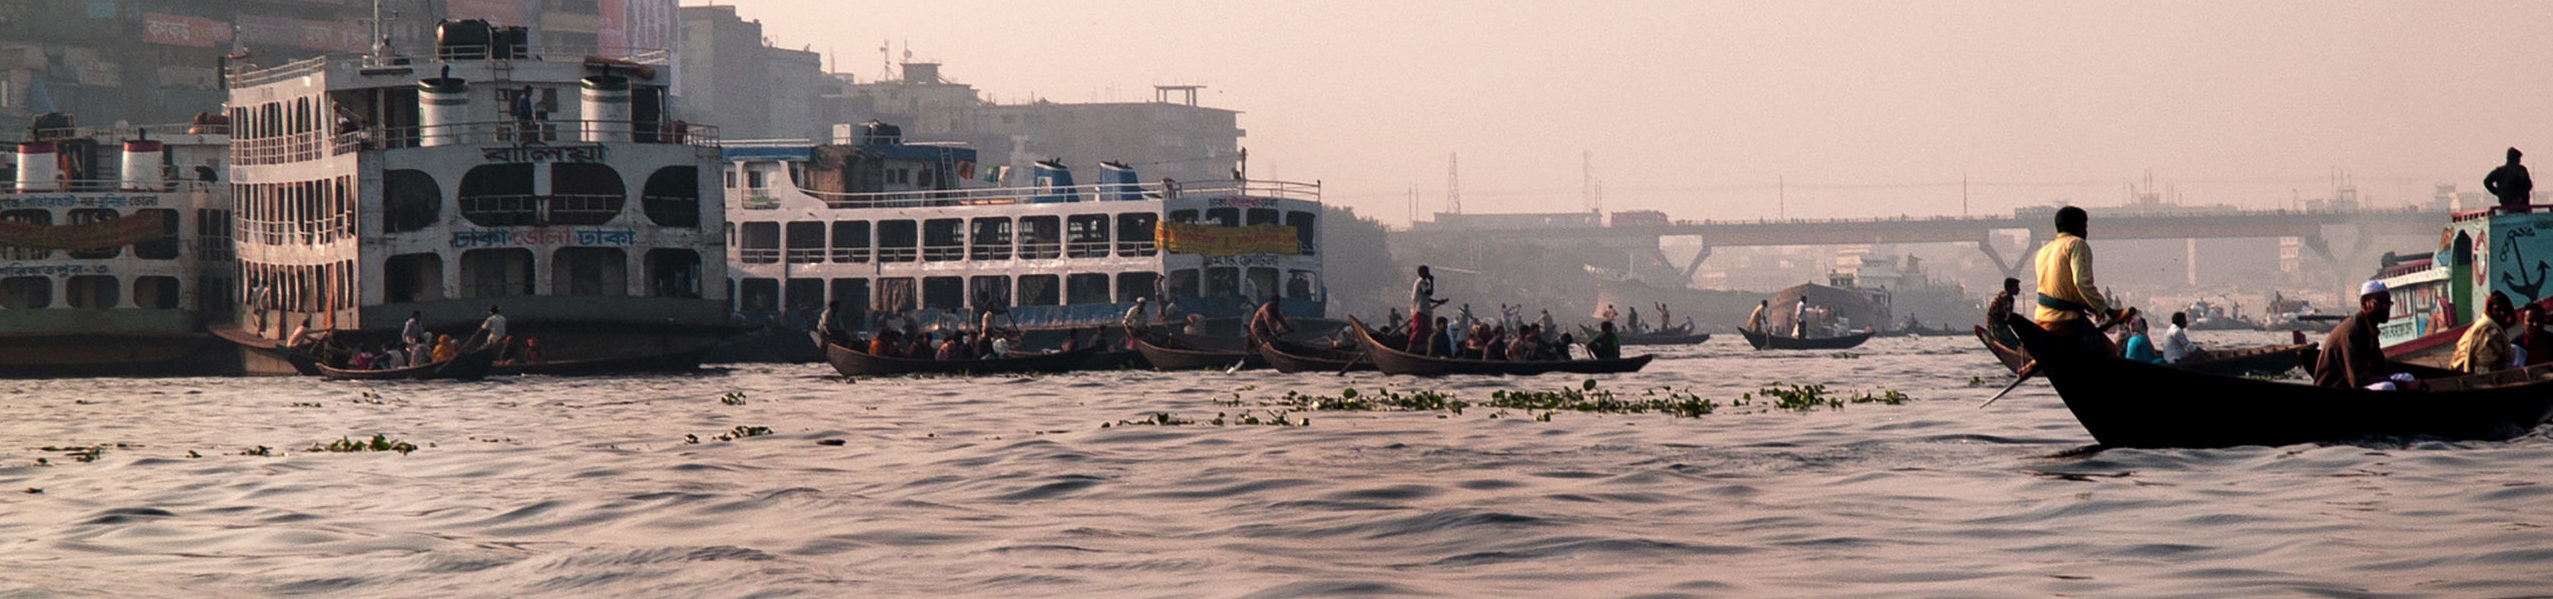 Boats over the Turag river in Dhaka; Credit: Suc/istock image;